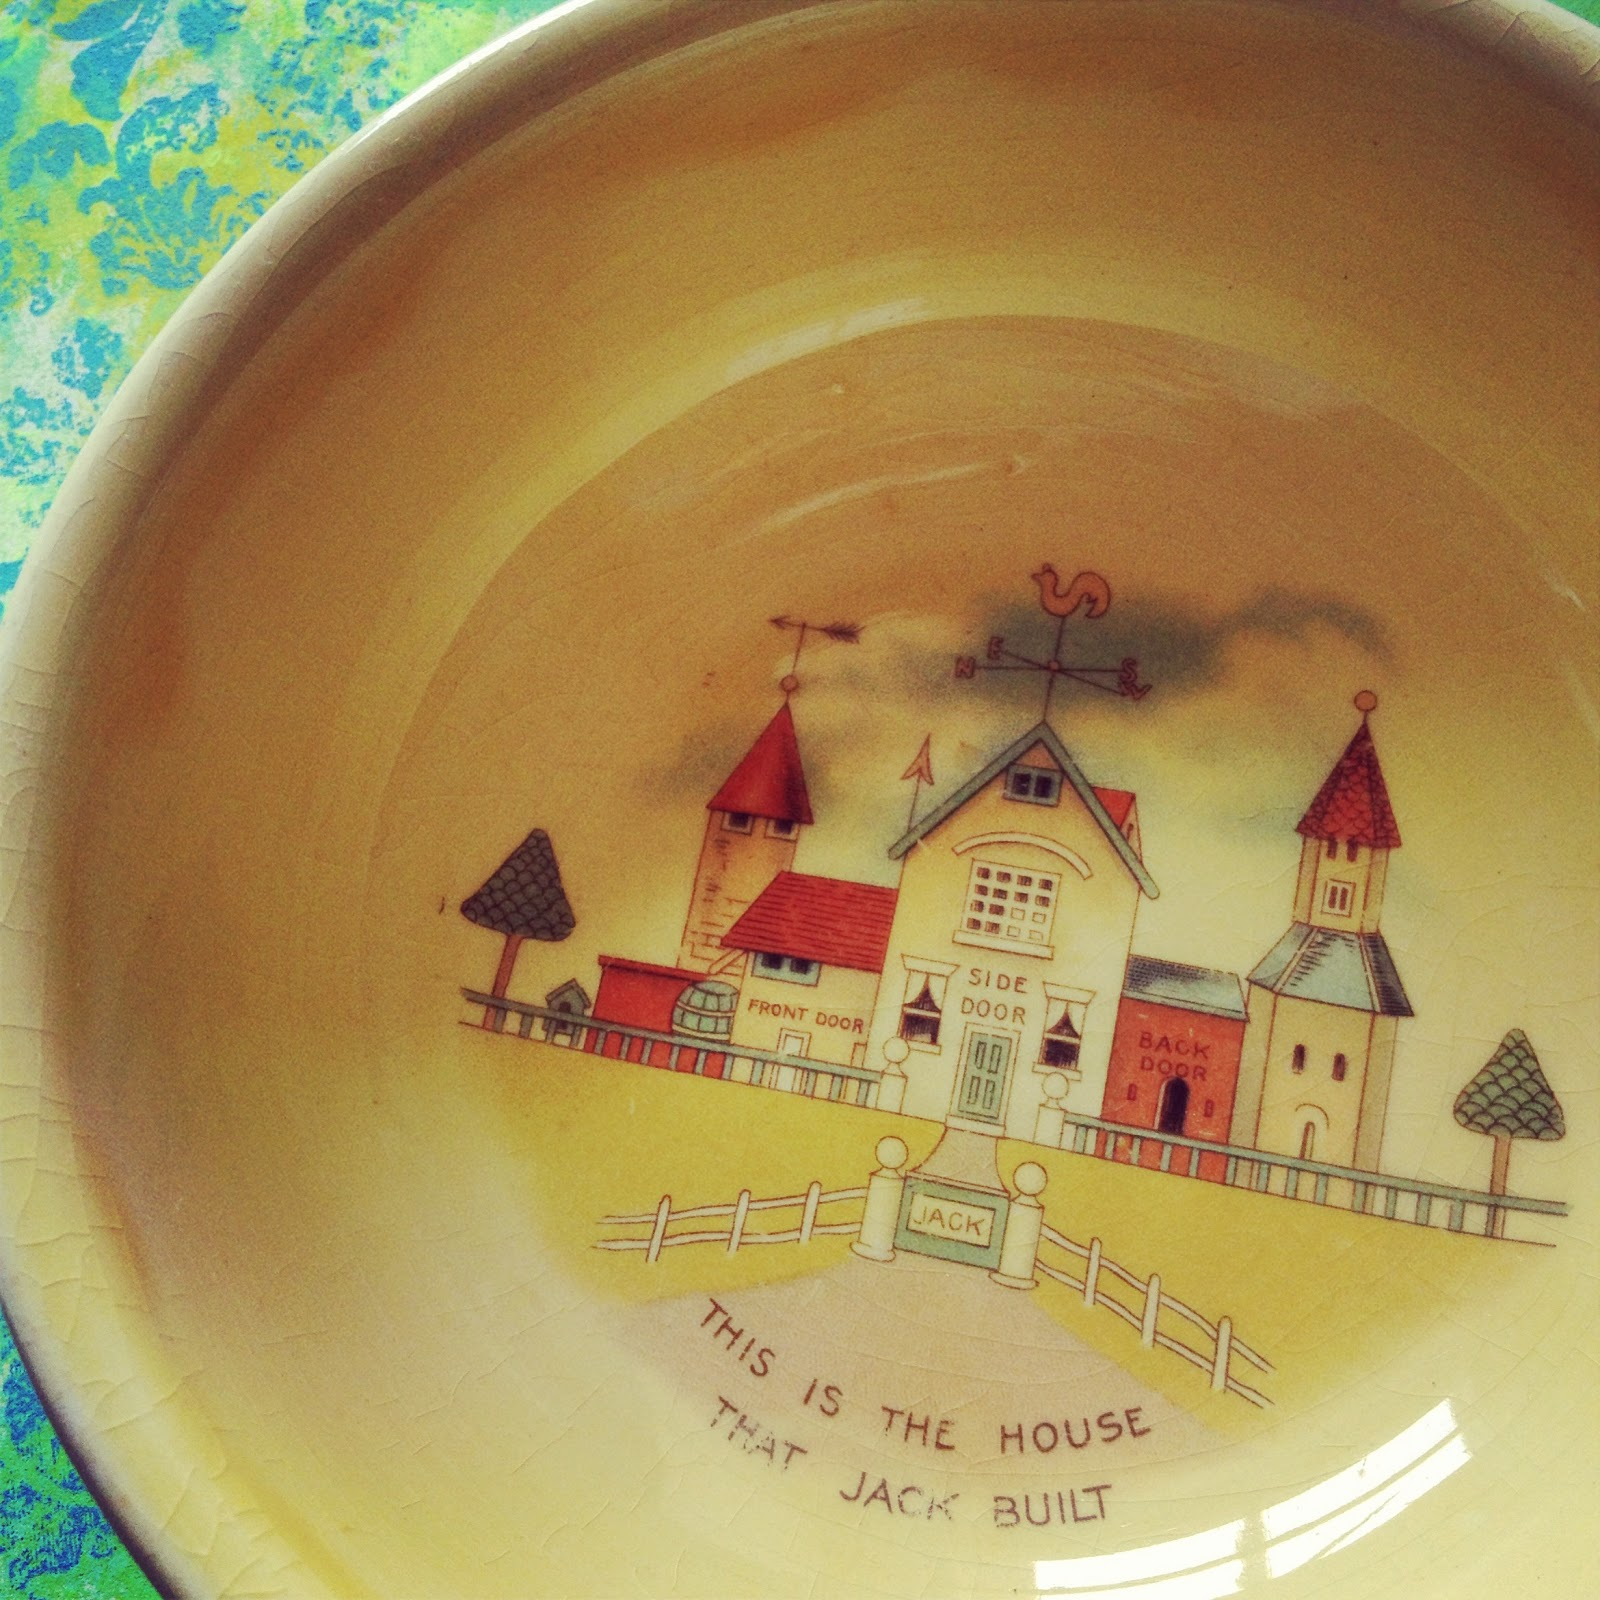 42nd Wedding Anniversary Quotes: The Sketchbook Challenge: Bowled Over